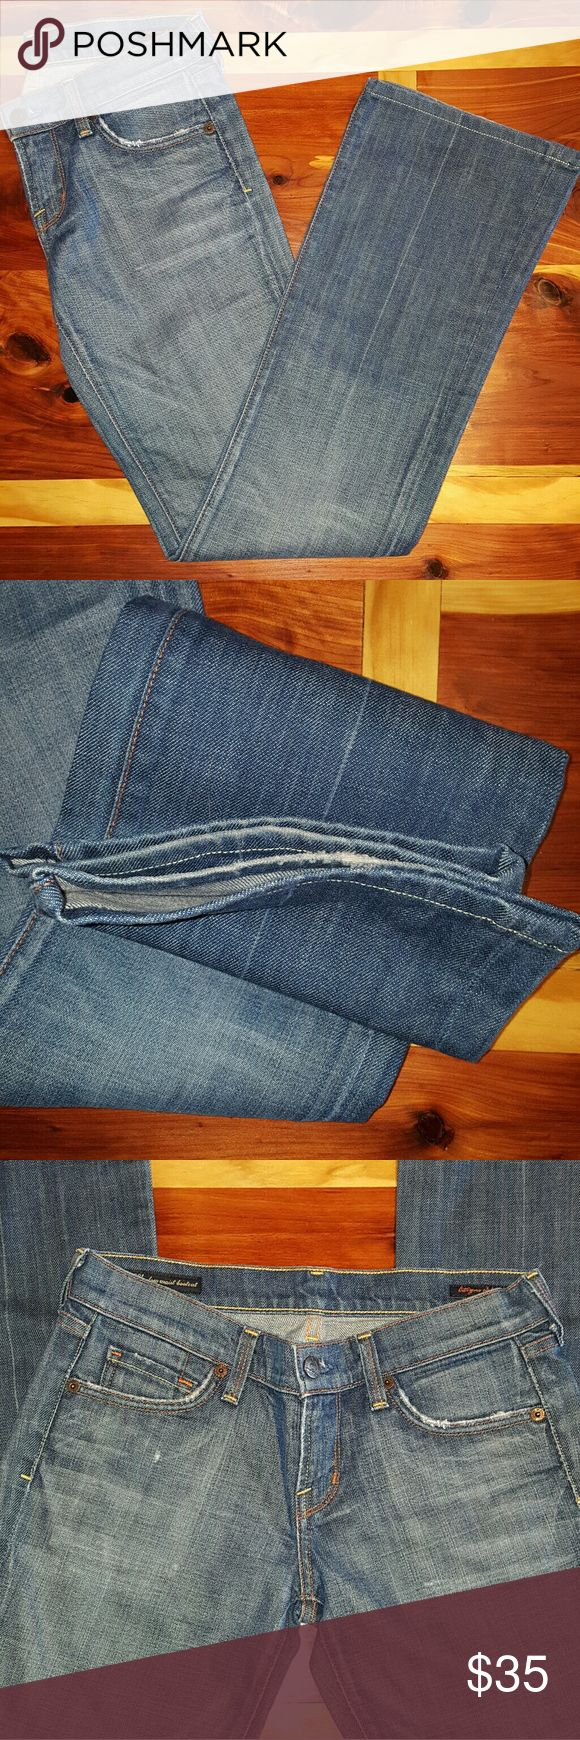 ⓈⒶⓁⒺ COH Lighter Wash Kelly Jeans Light/medium wash Citizens of Humanity denim. 26 inch waist and 32 inch inseam. Worn but no stains or tears. Citizens of Humanity Jeans